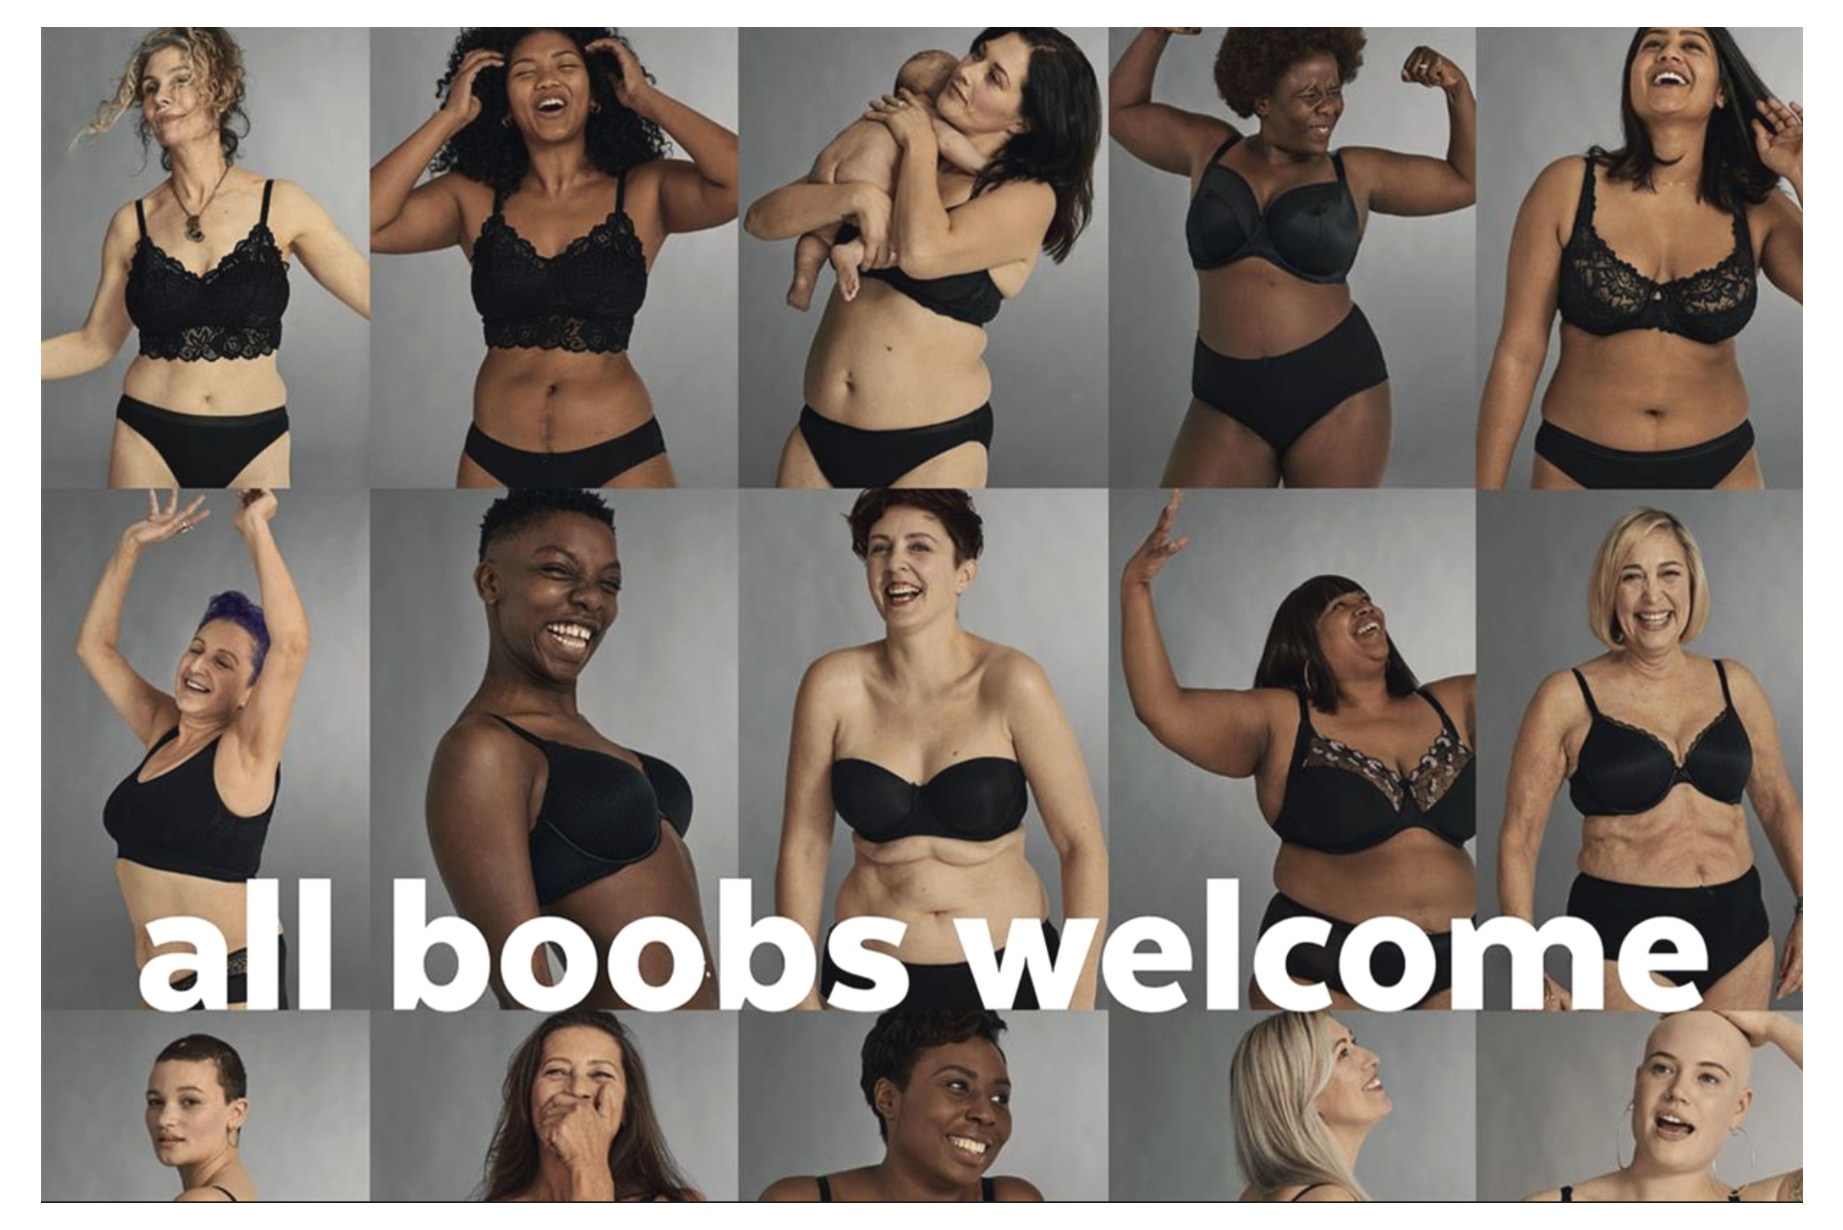 All Boobs Welcome Campaign Images. Agency: Portas